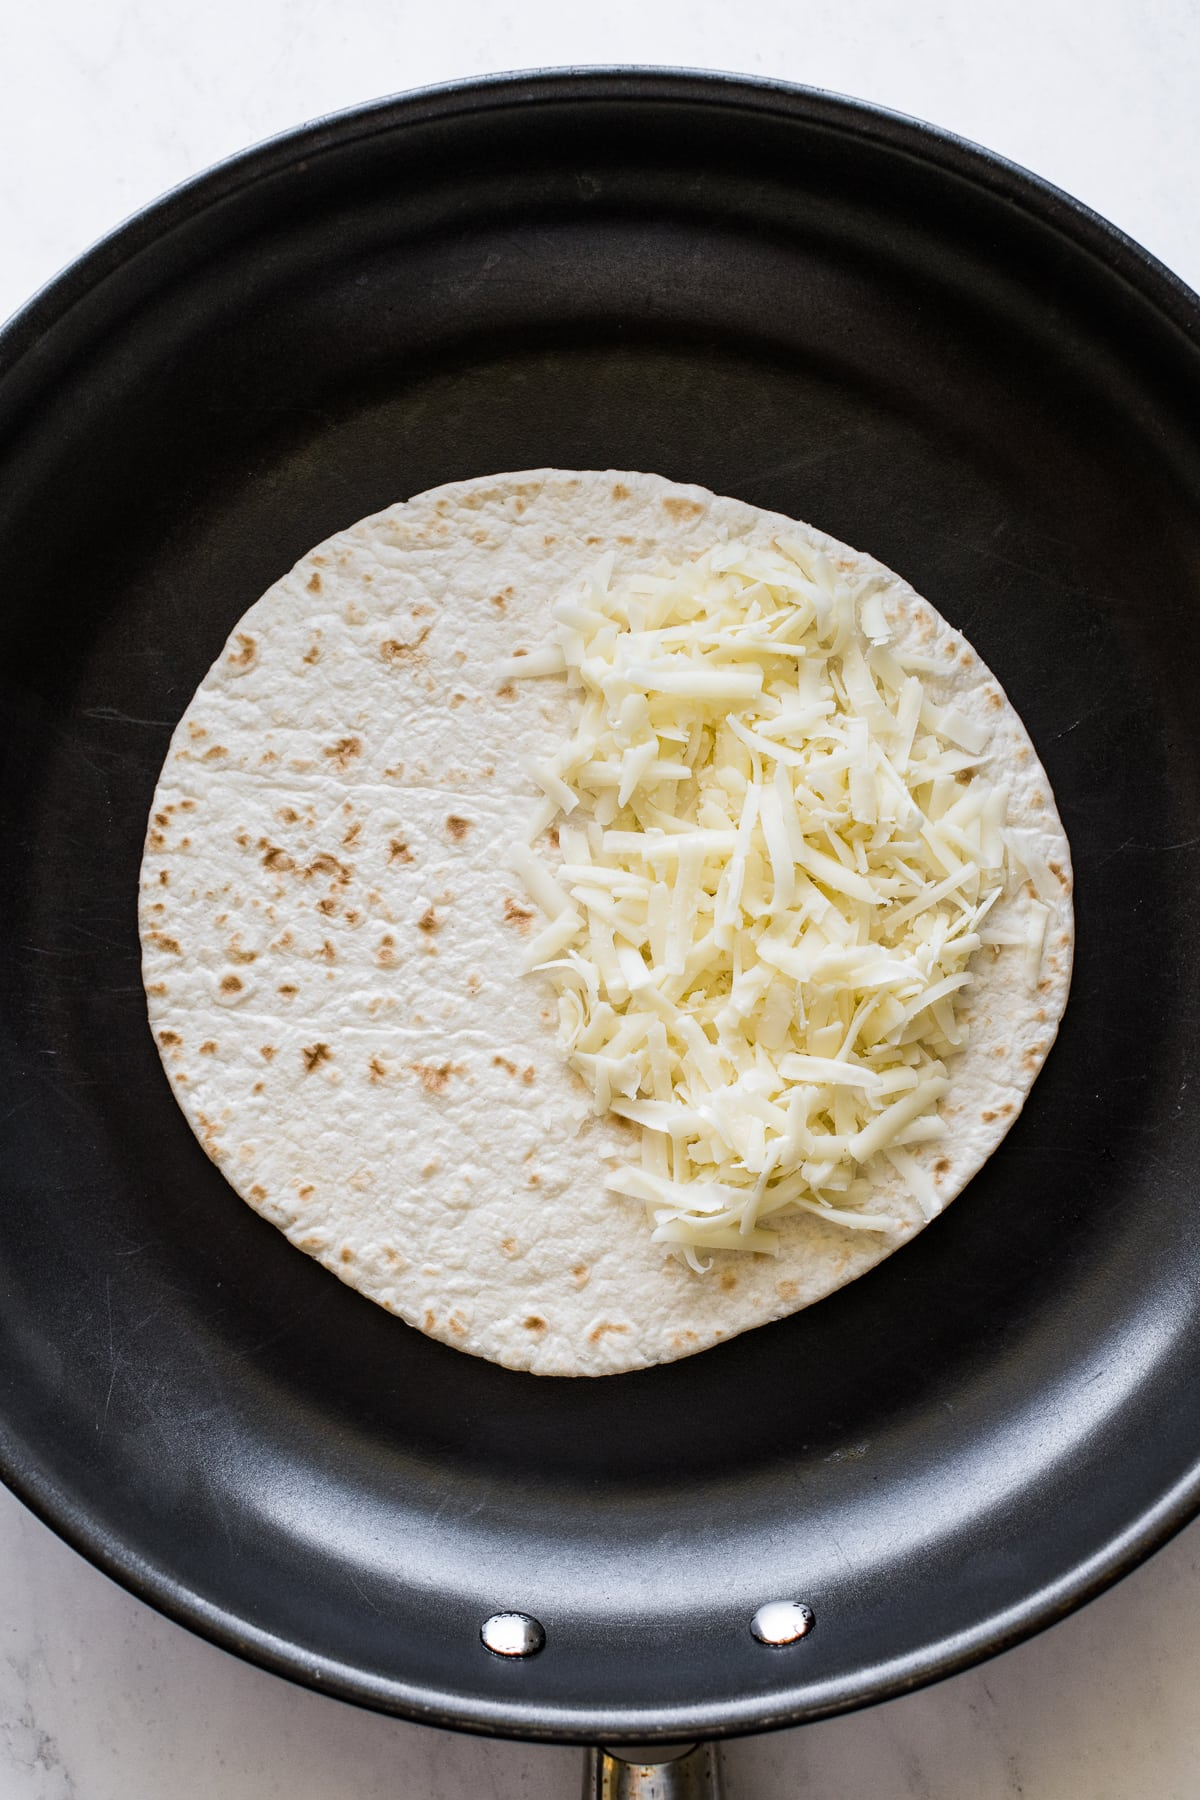 A flour tortilla in a skillet with shredded cheese.